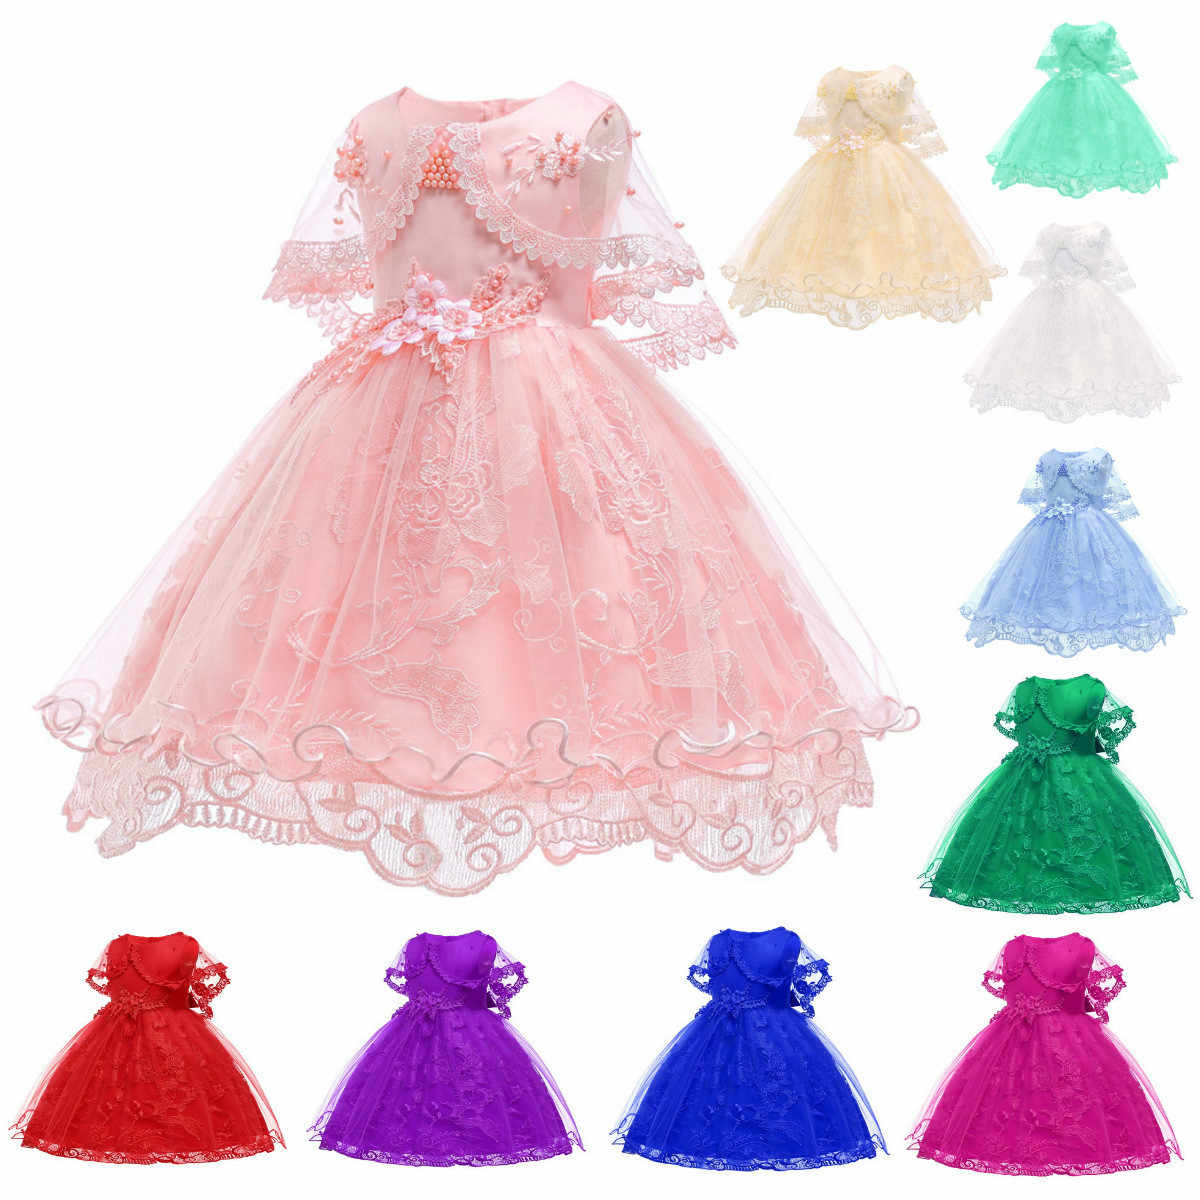 BacklakeGirls New 2-10 Year Pink 2019 Children Tulle Pretty Princess Flower Girl Dresses With Beadings And Flower For Wedding